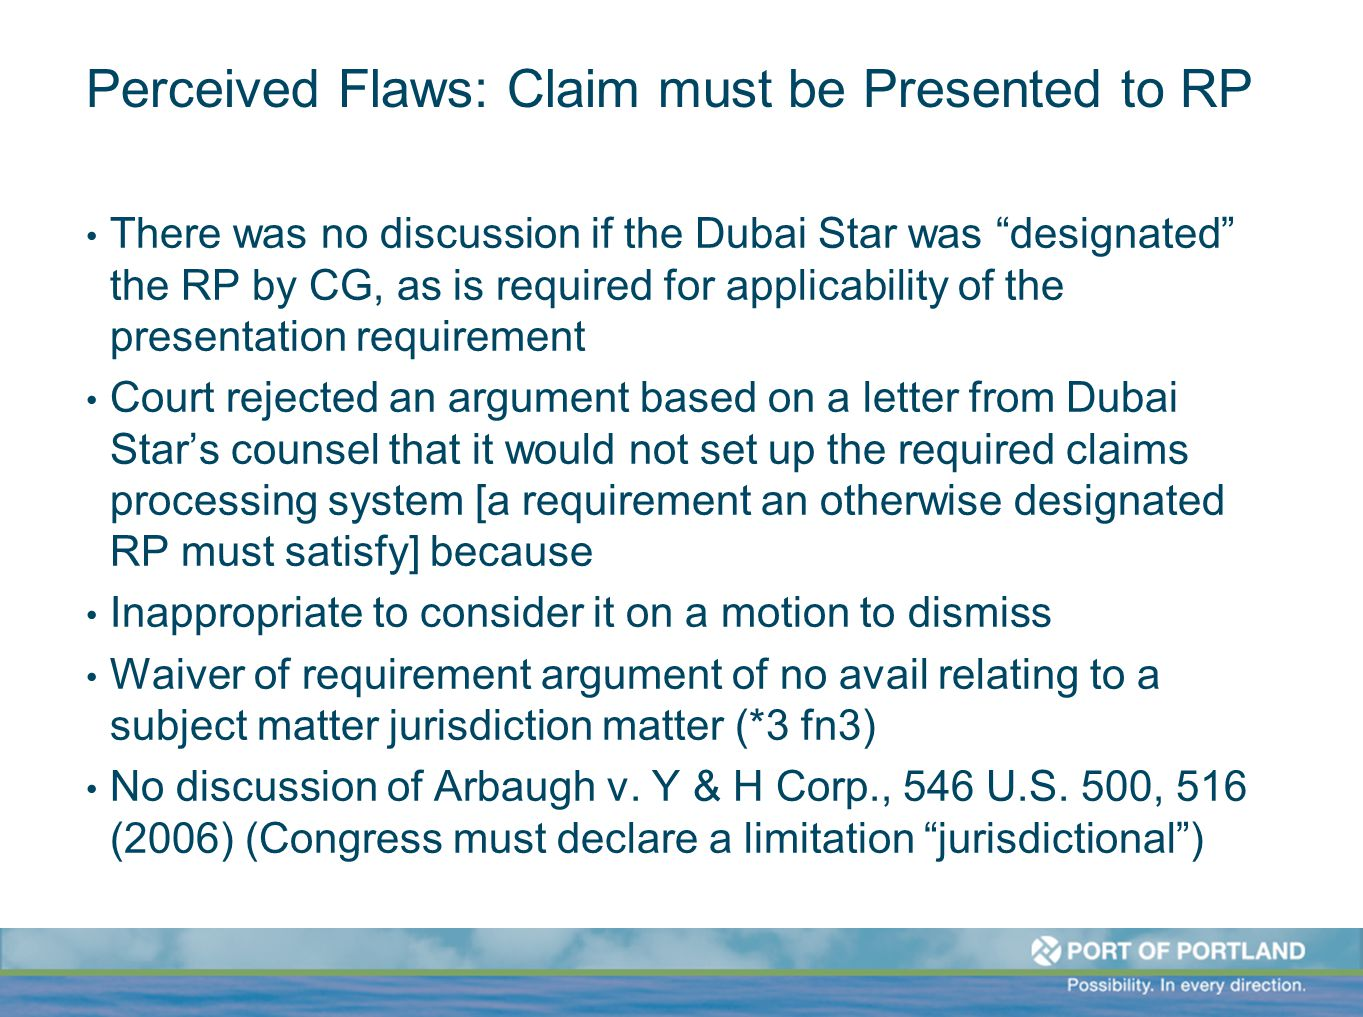 Perceived Flaws: Claim must be Presented to RP There was no discussion if the Dubai Star was designated the RP by CG, as is required for applicability of the presentation requirement Court rejected an argument based on a letter from Dubai Star's counsel that it would not set up the required claims processing system [a requirement an otherwise designated RP must satisfy] because Inappropriate to consider it on a motion to dismiss Waiver of requirement argument of no avail relating to a subject matter jurisdiction matter (*3 fn3) No discussion of Arbaugh v.